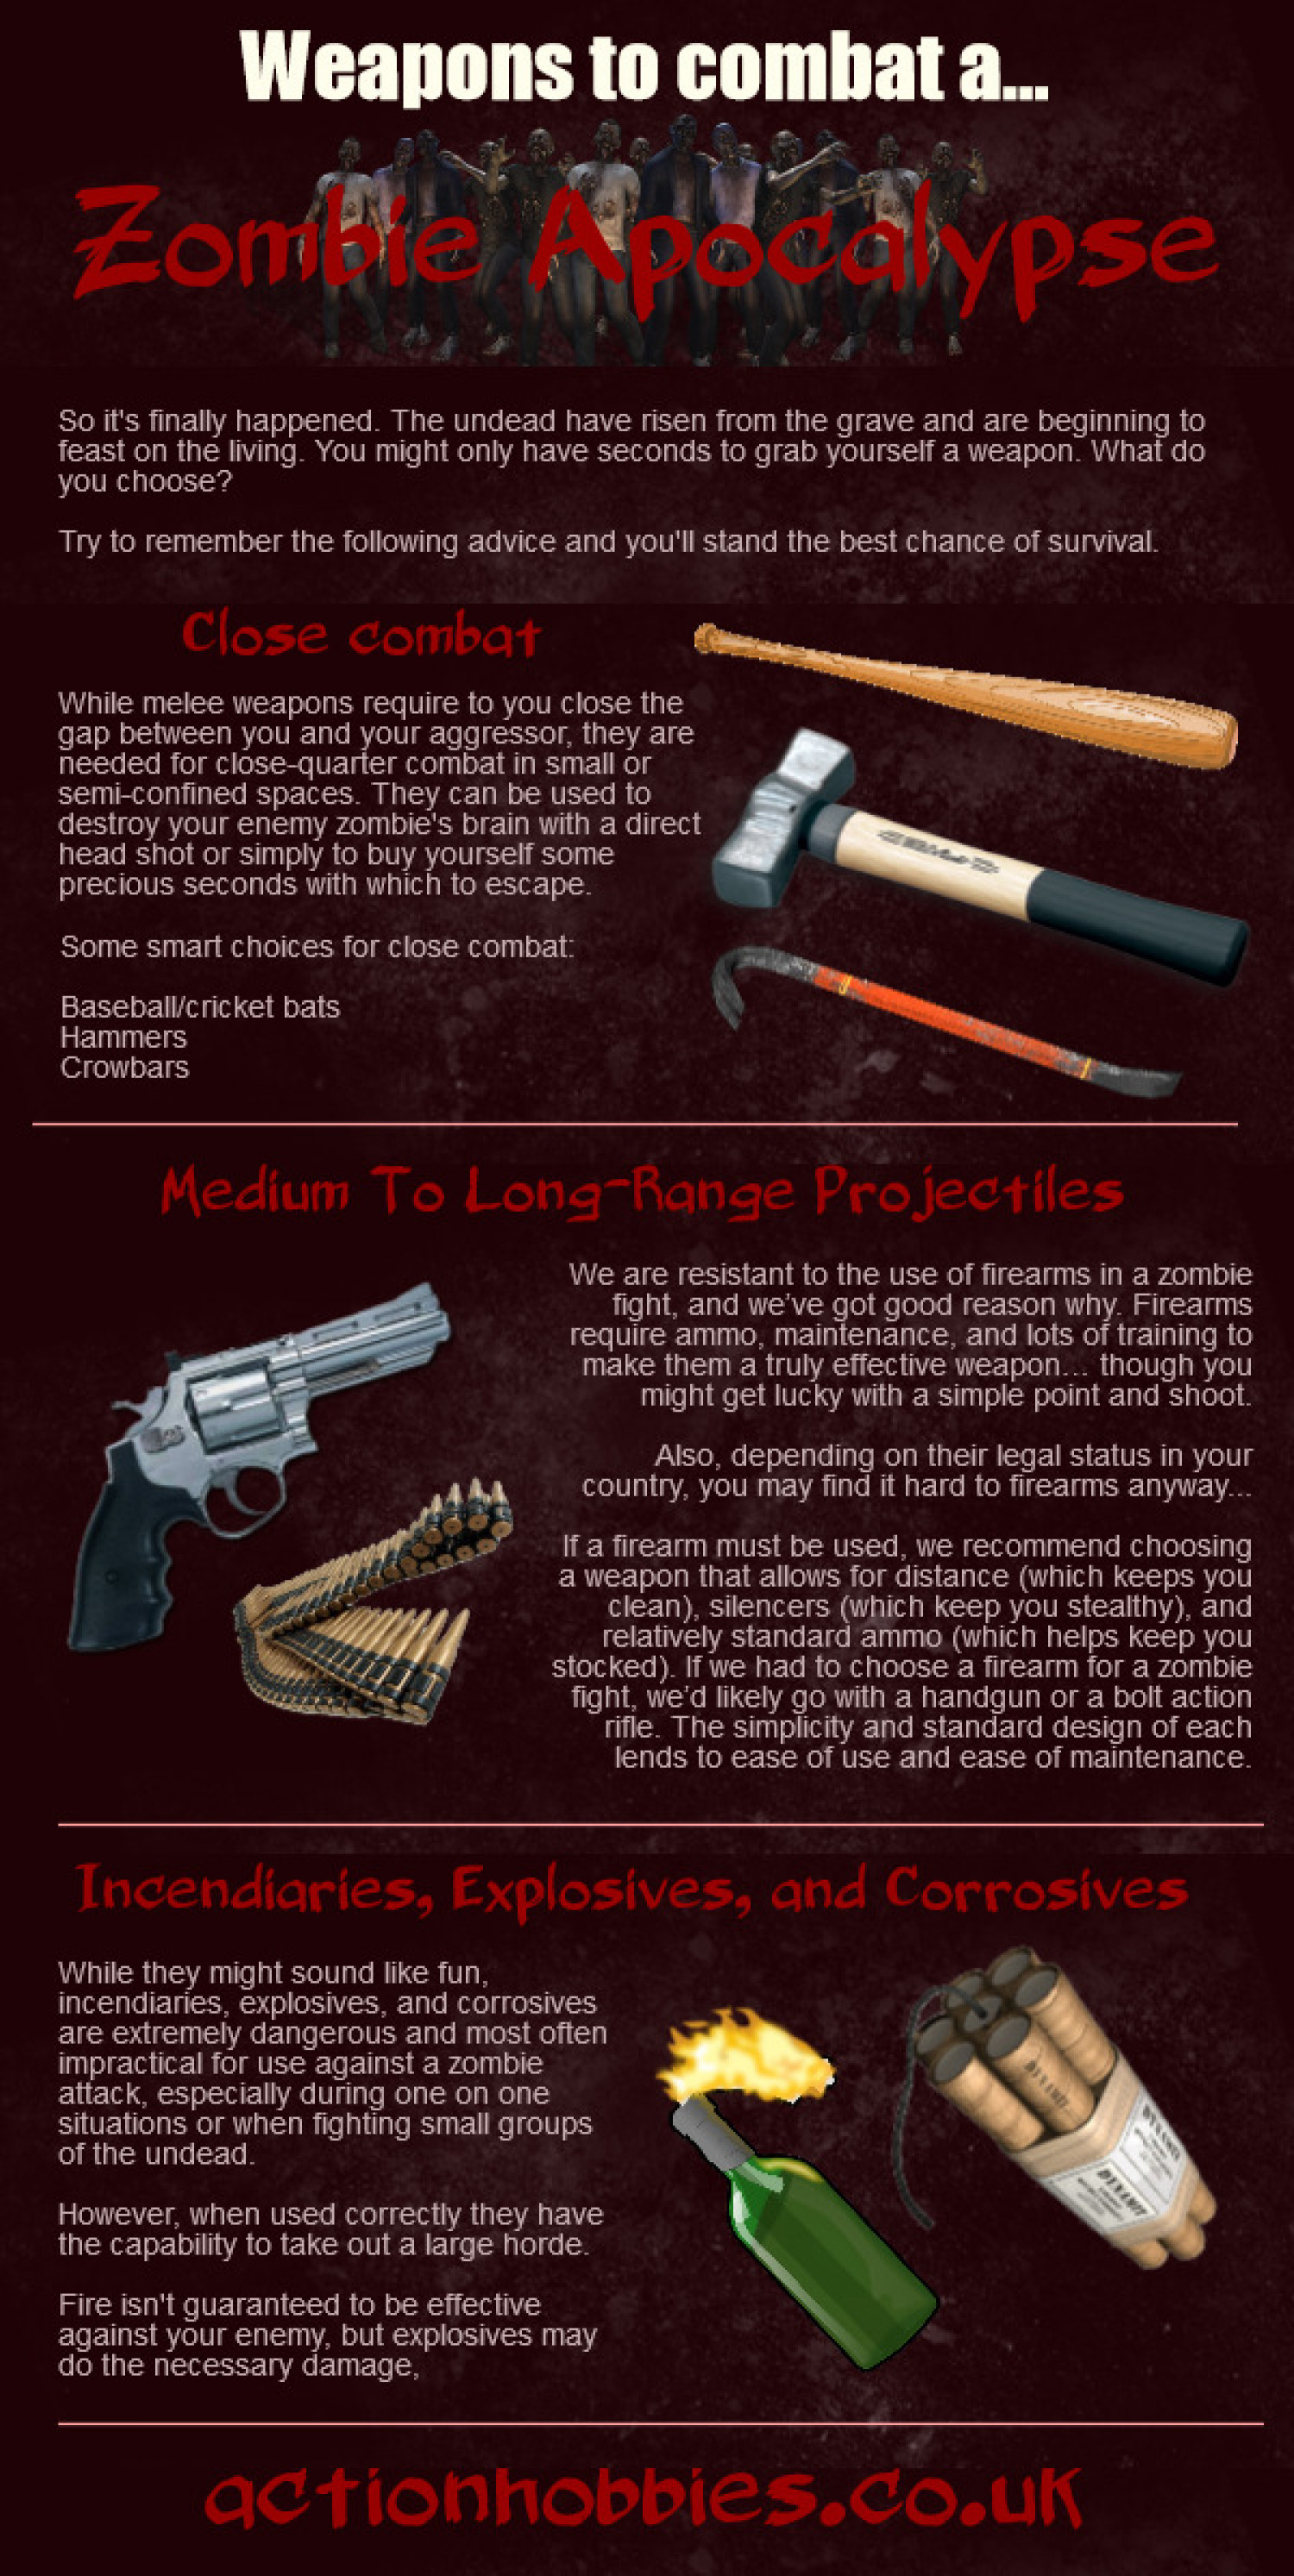 Weapons To Combat A Zombie Apocalypse Visual Ly